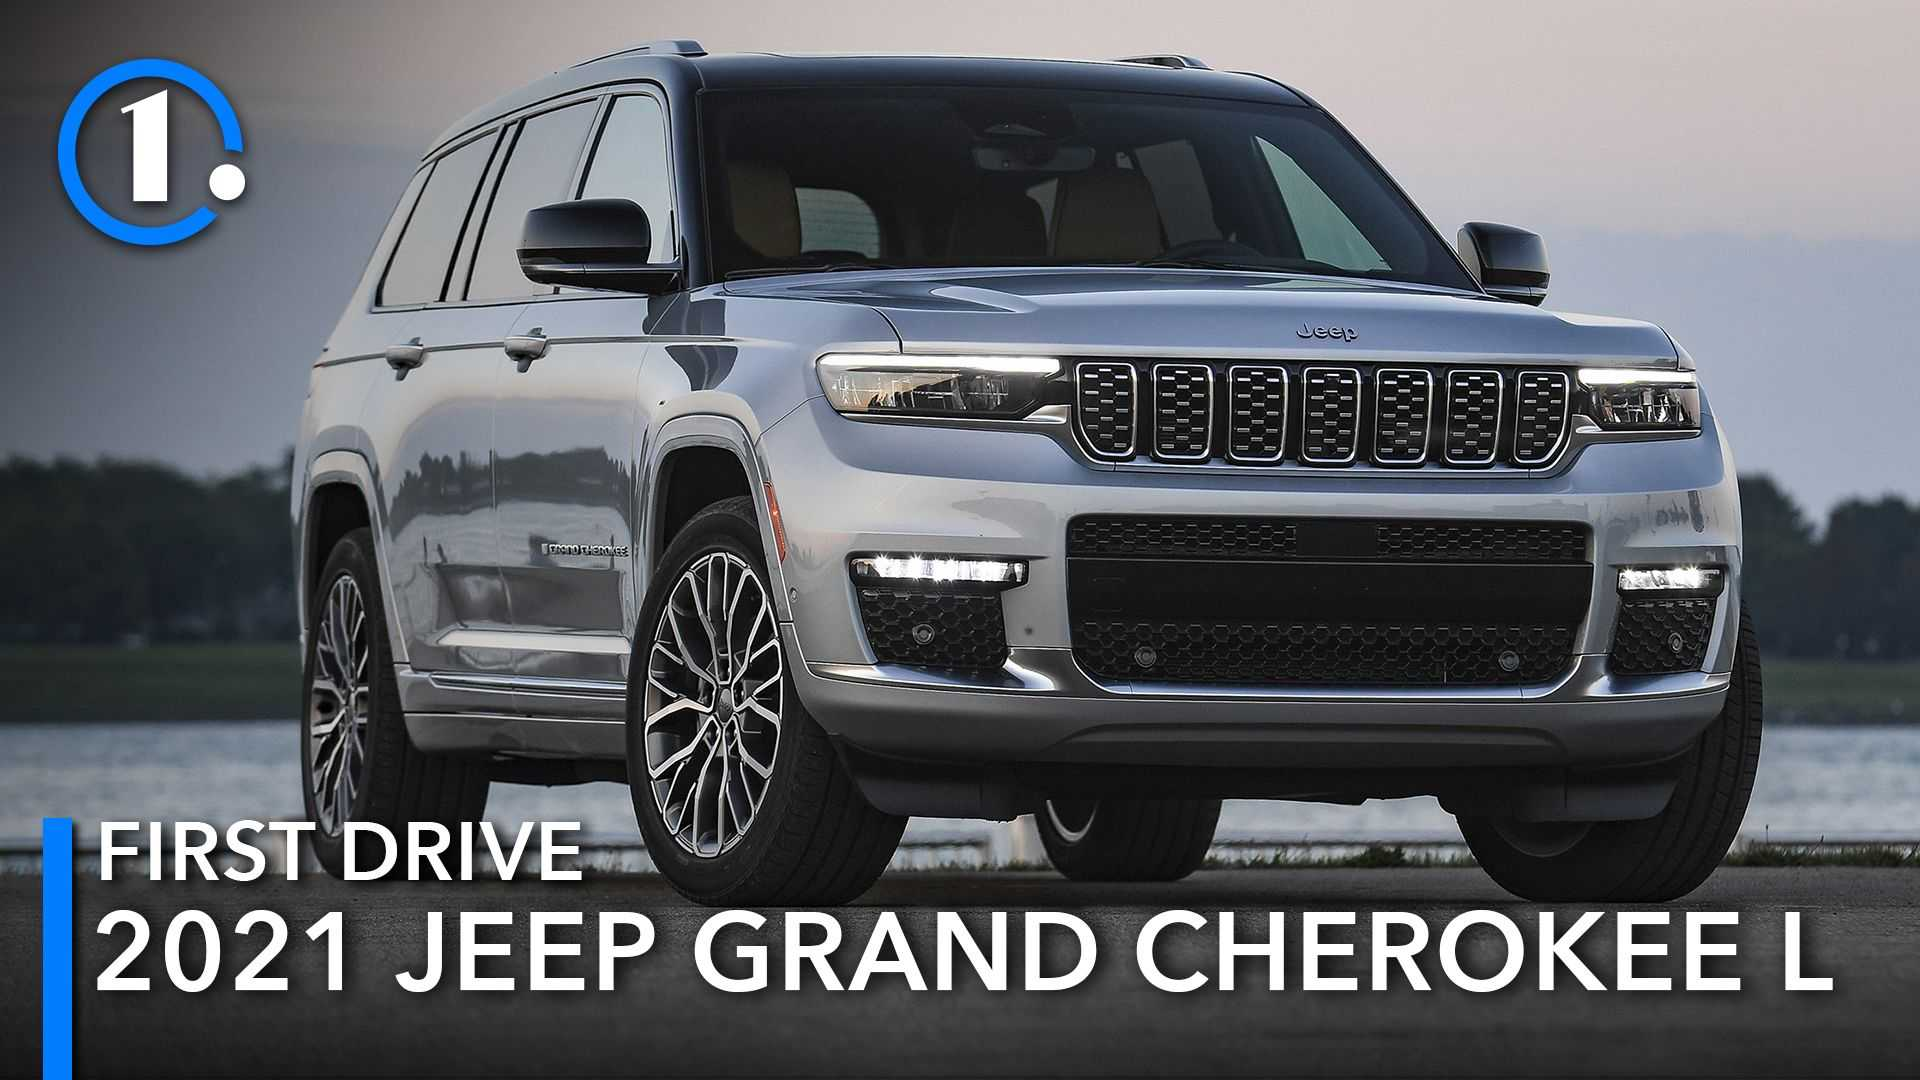 2021 Jeep Grand Cherokee L First Drive Review: Overdue Expansion